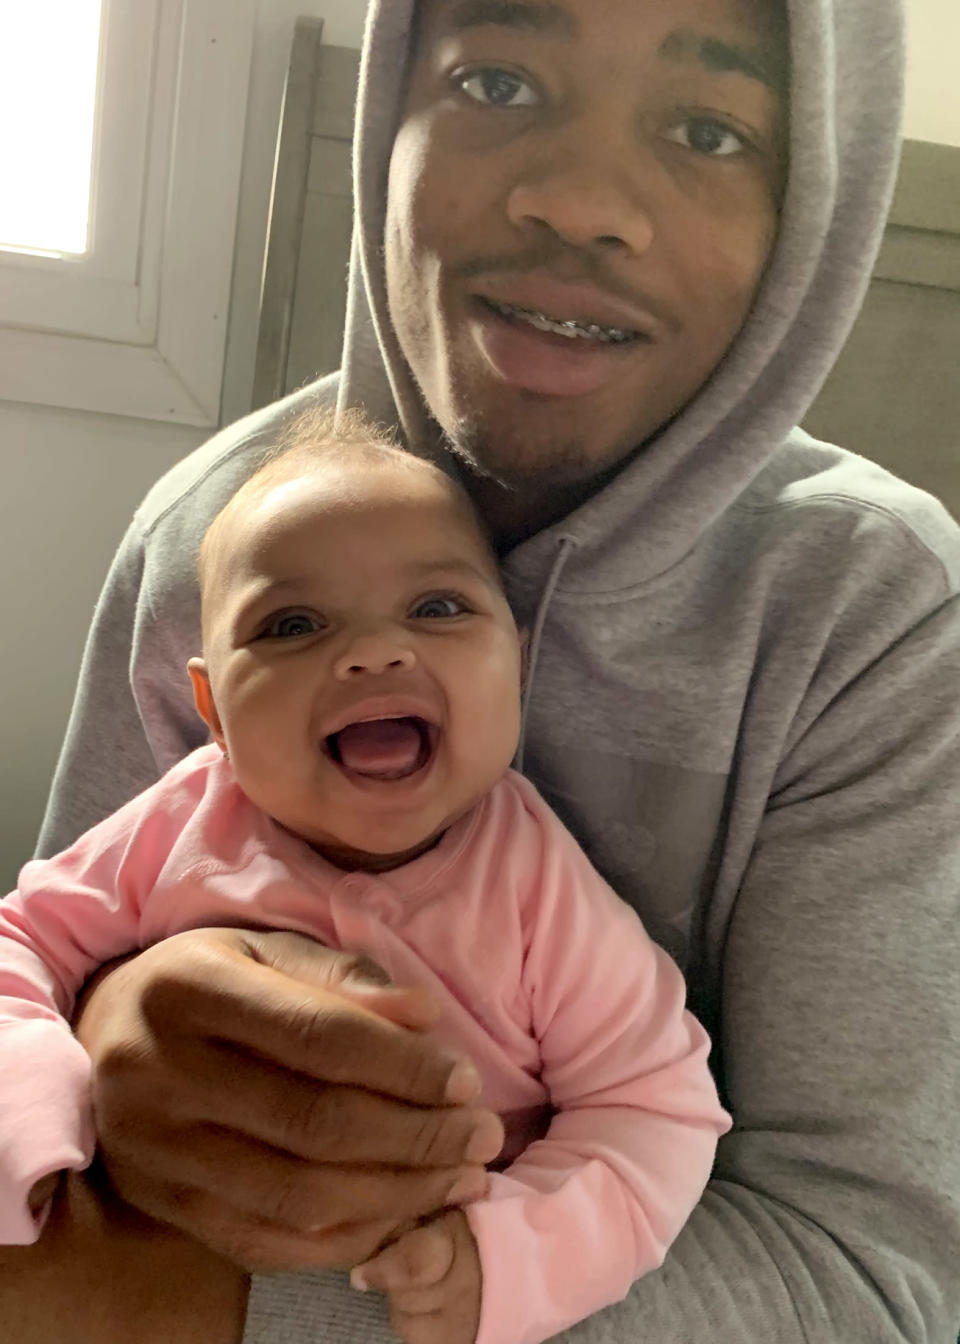 Image: Raheem Nixon, 19, and his 8 month old daughter Alayah. He has been banished to virtual instruction at his high school near Reading, Pa. (Family Handout)